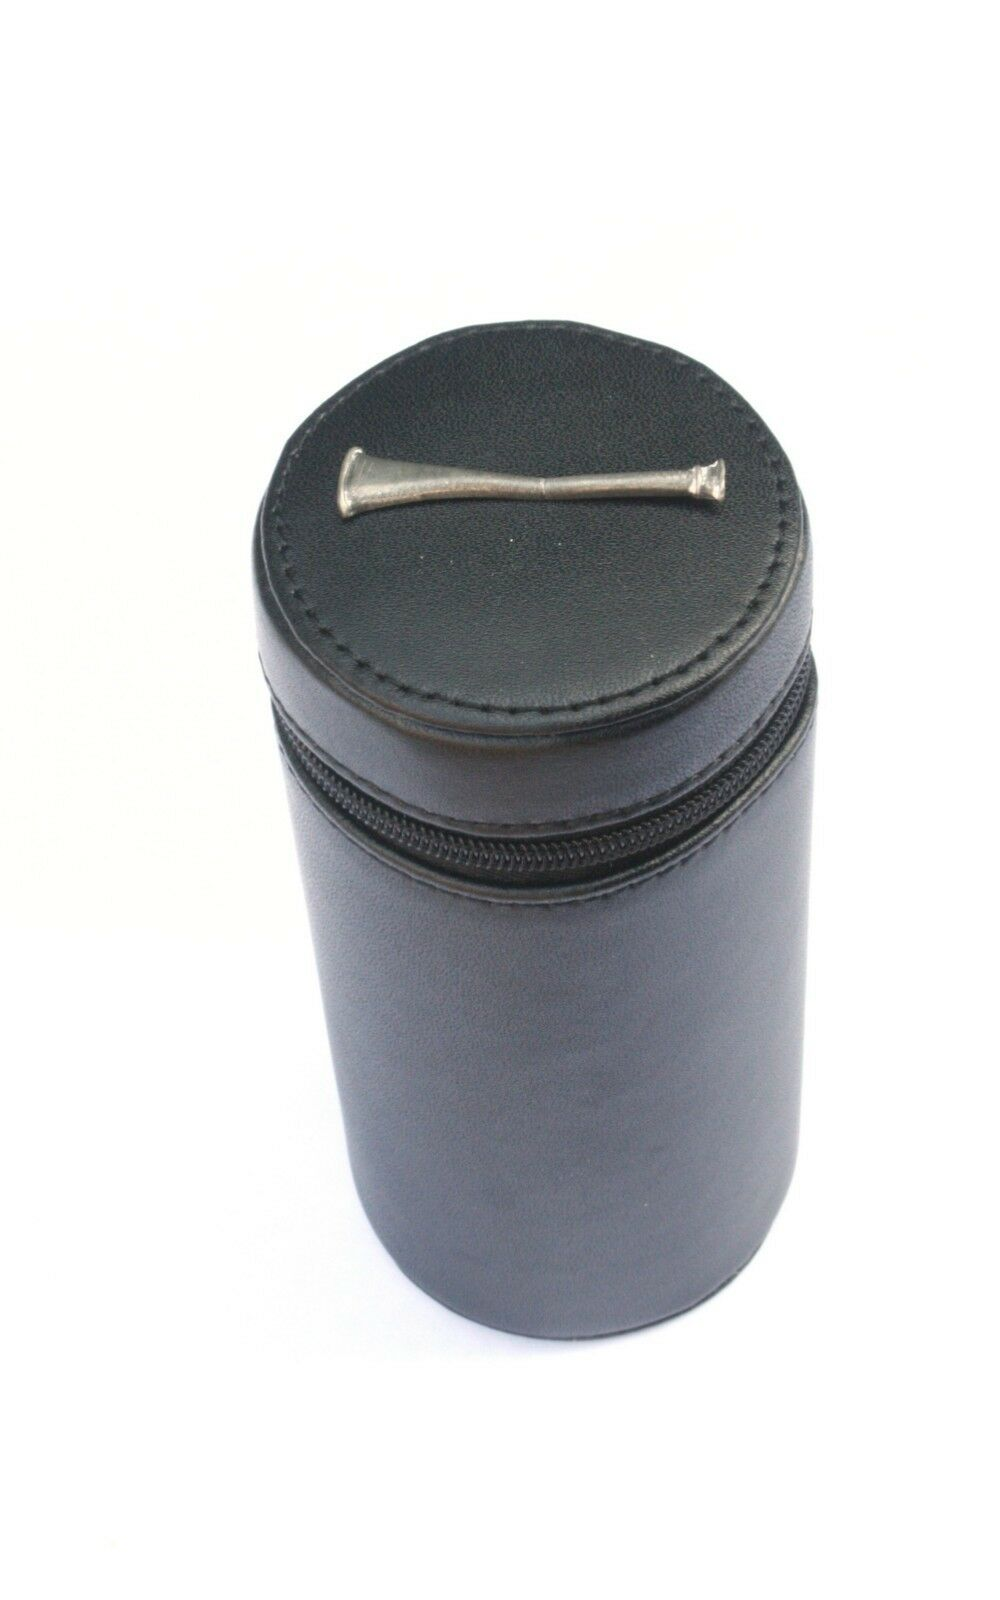 Hunting Horn Shooting Peg Position Finder Numberojo Cups 1-10 negro Leather Case